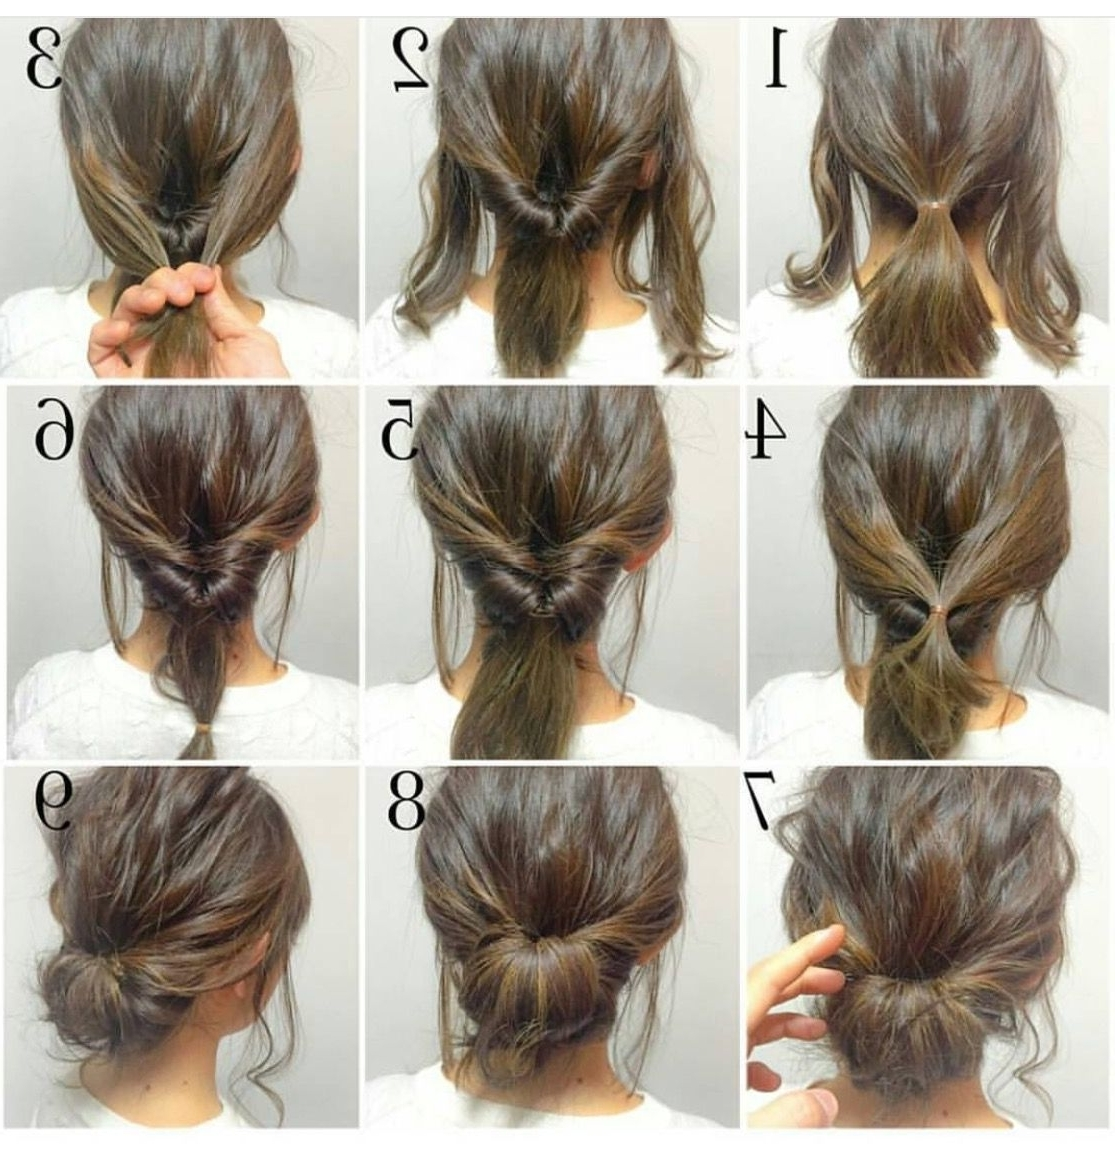 Easy, Hope This Works Out Quick Morning Hair! | • H A I R Intended For Updo Low Bun Hairstyles (View 2 of 15)